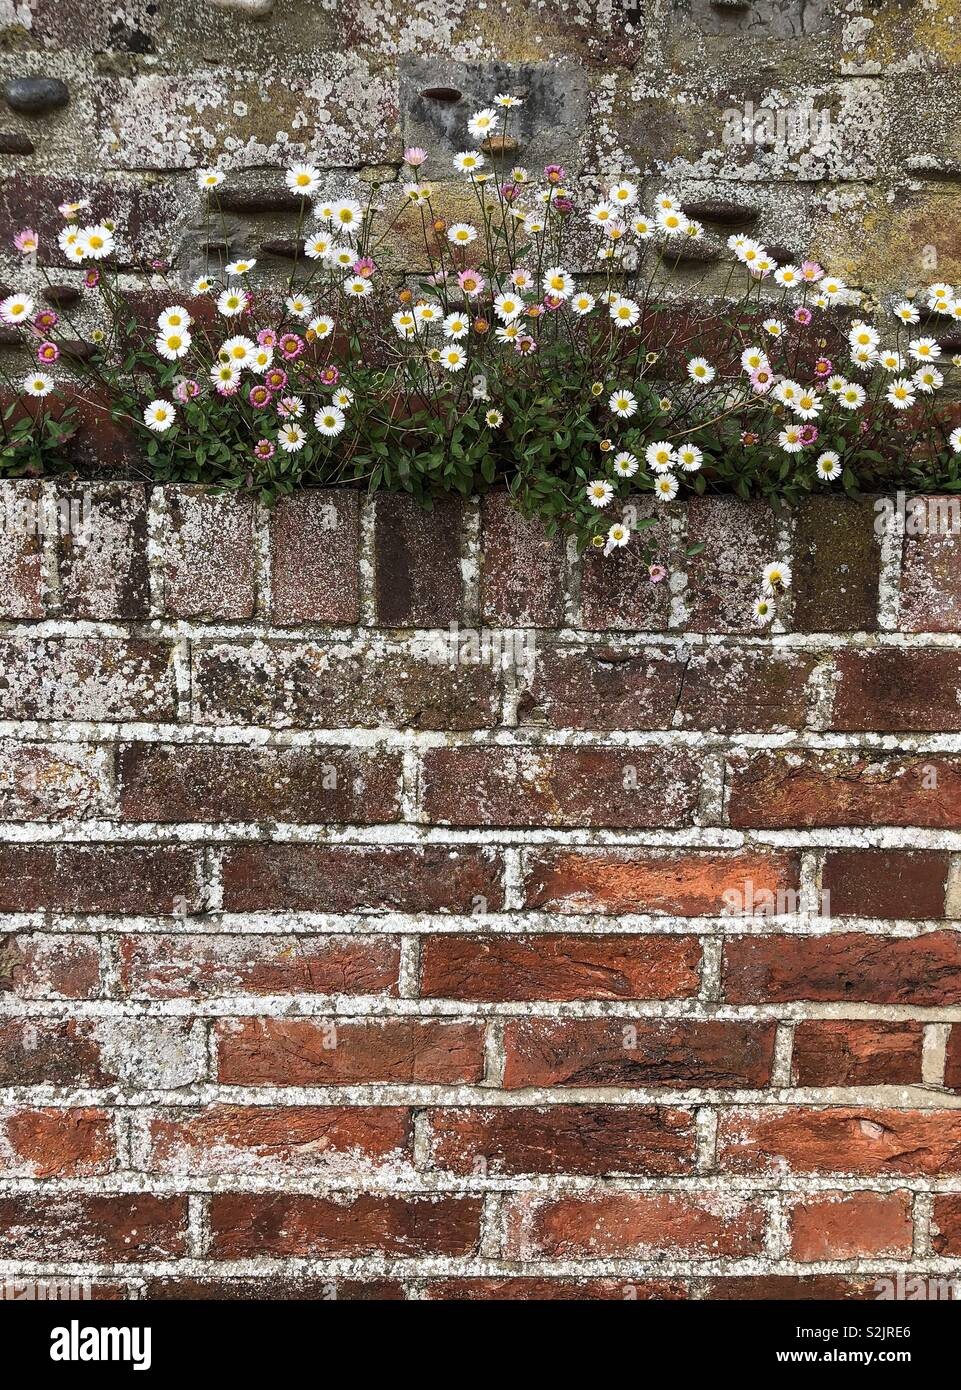 Dainty Pink And White Flowers Growing In The Crevice Of A Rough Weathered Brick Wall Stock Photo Alamy